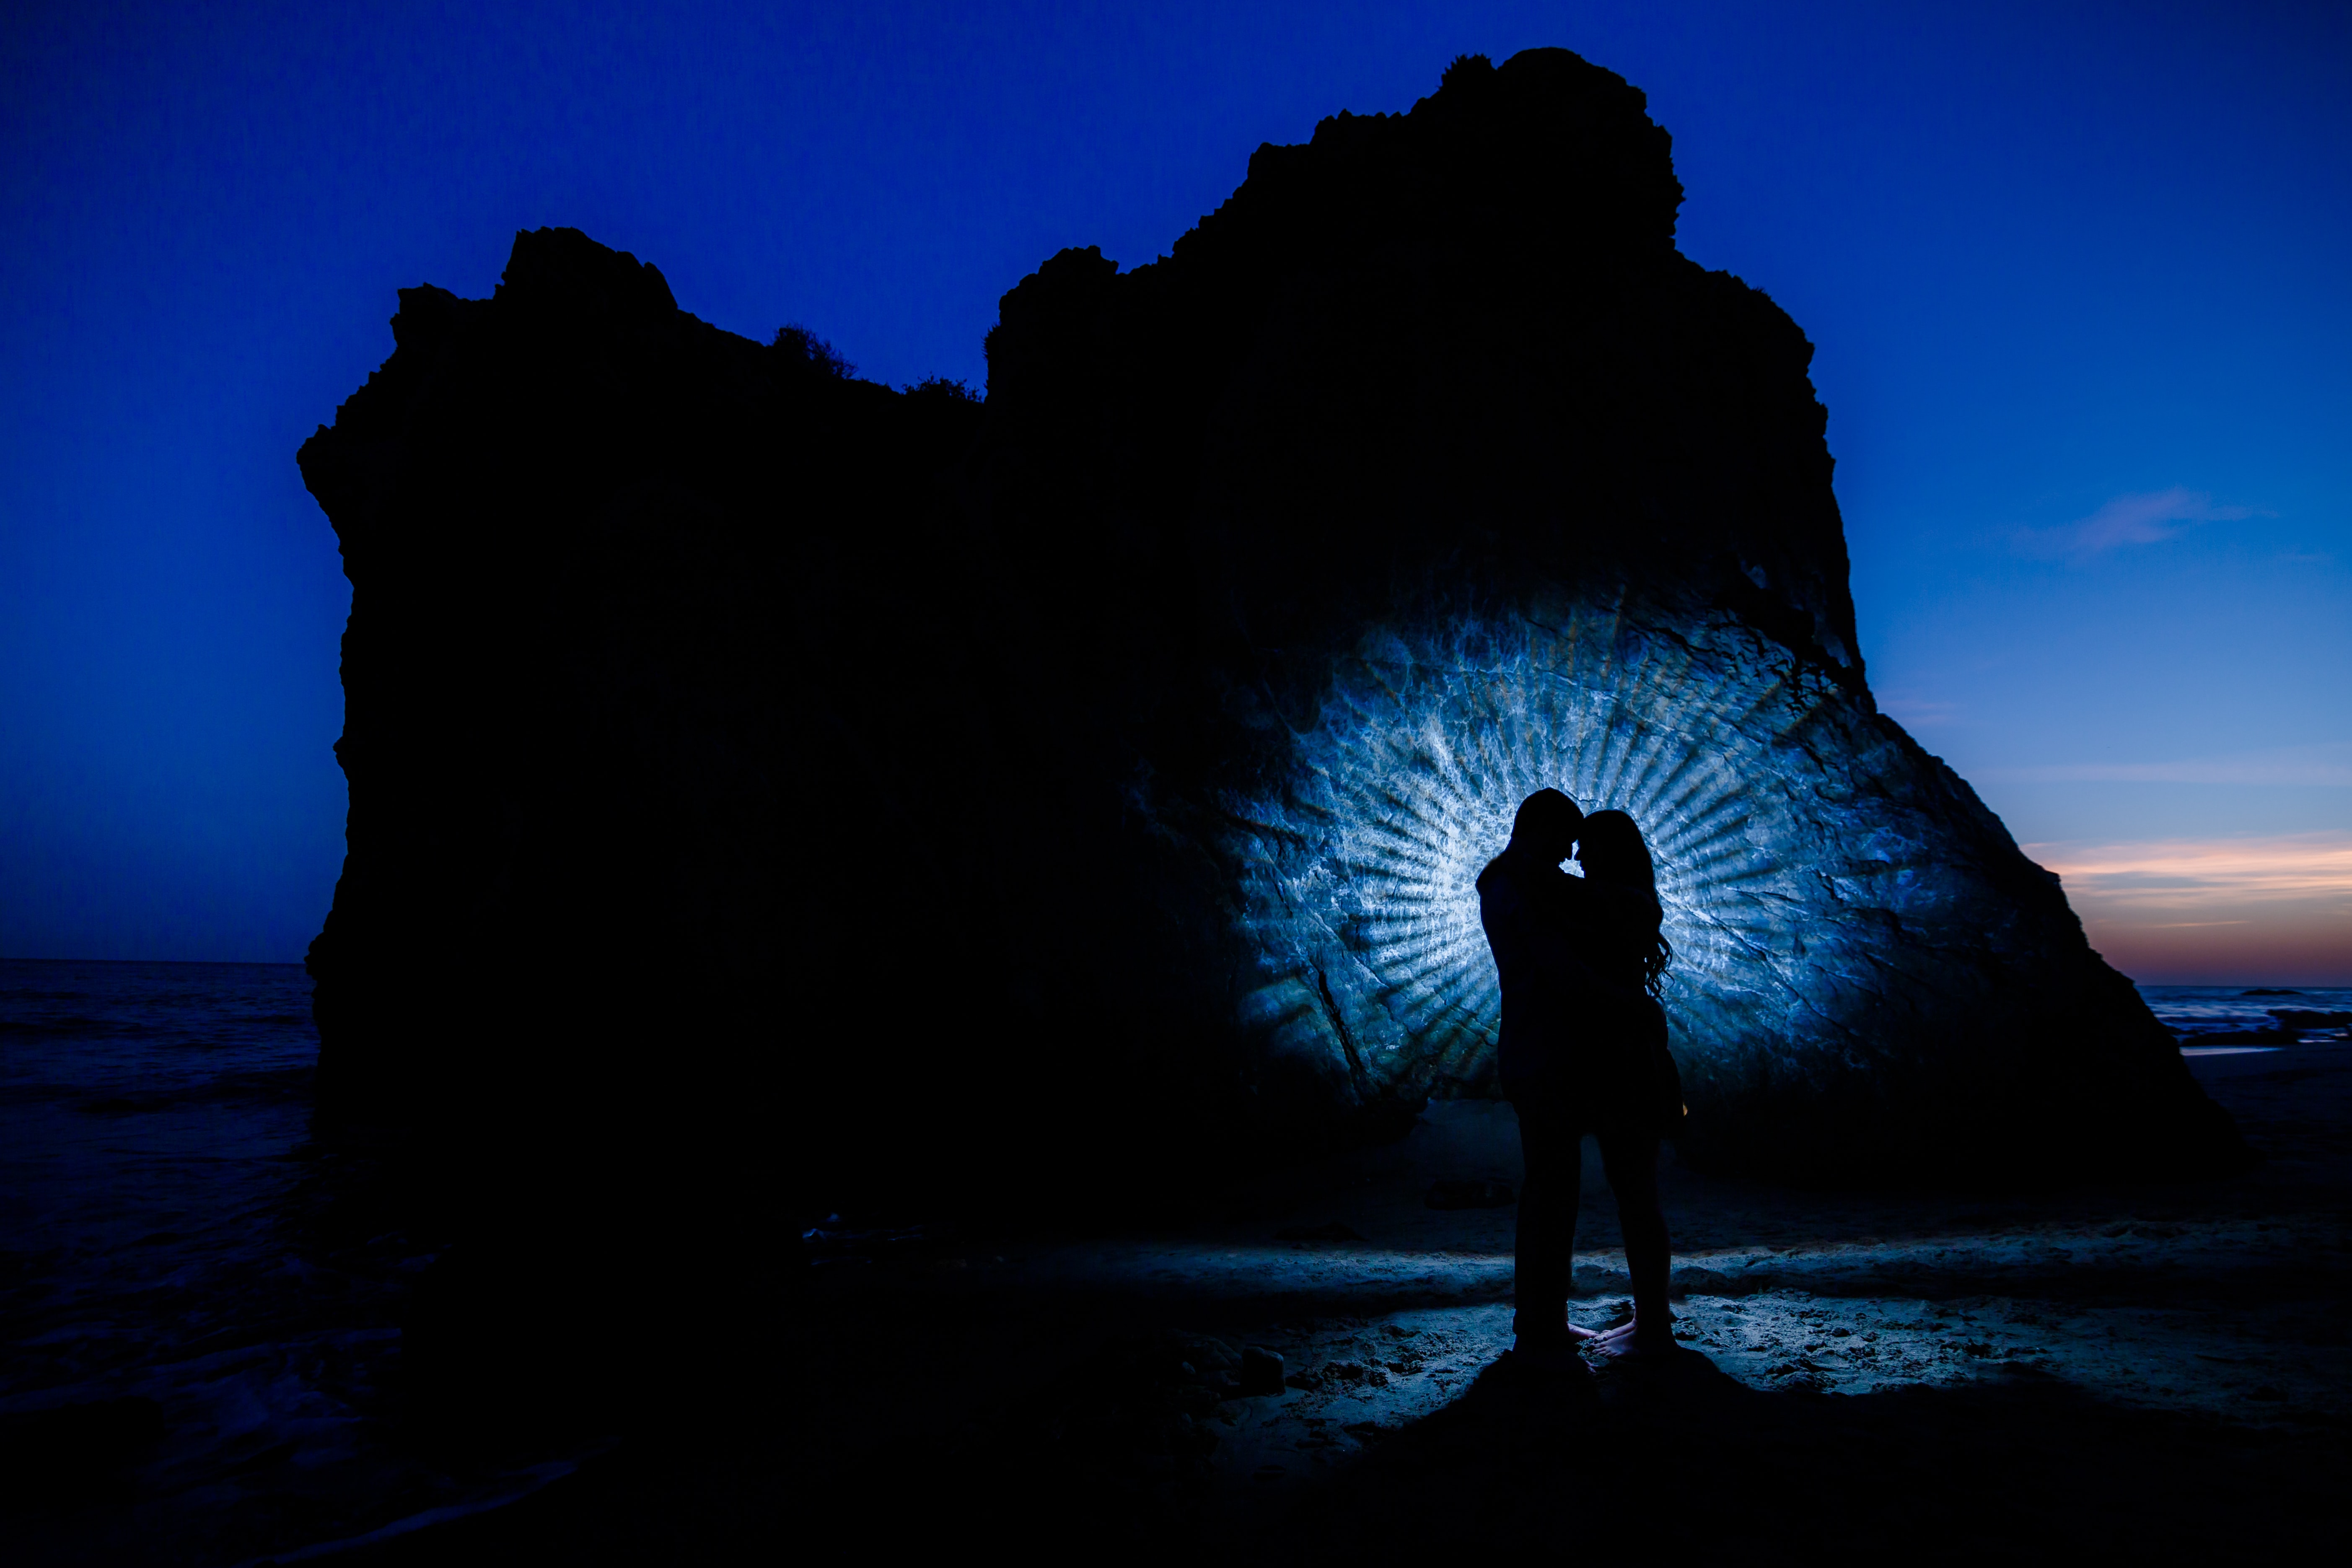 silhouette of couple near rock formation during night time